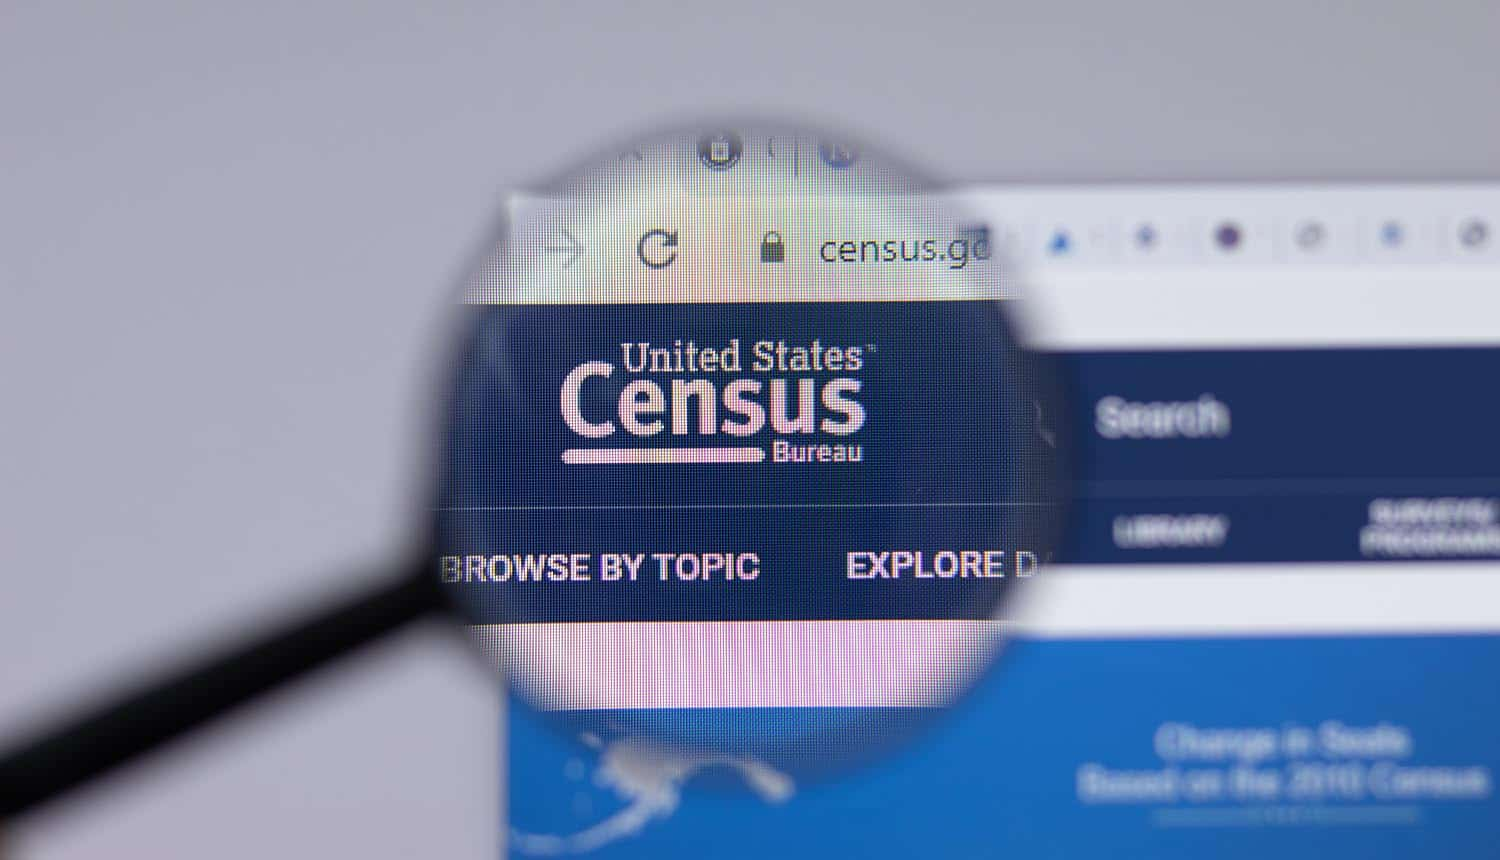 US Census Bureau logo close-up on website showing cyber attack targeting Citrix vulnerability